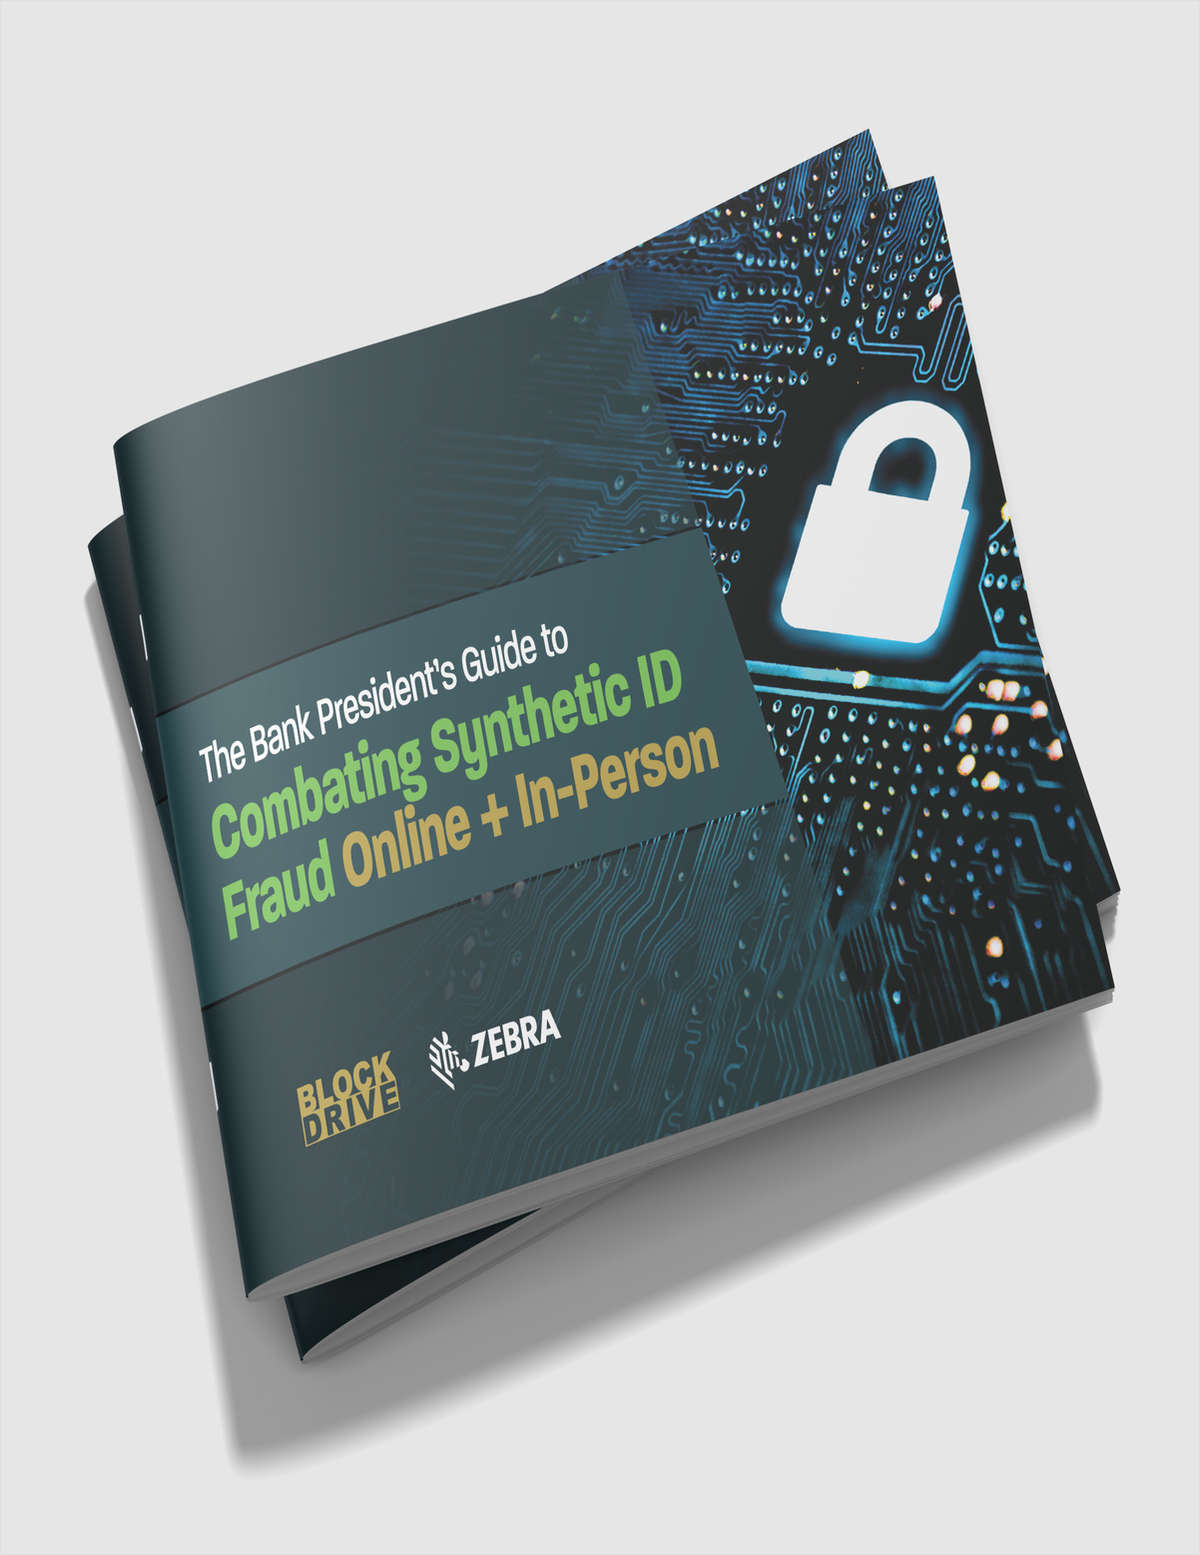 The Bank President's Guide to Combating Synthetic ID Fraud Online and In-Person